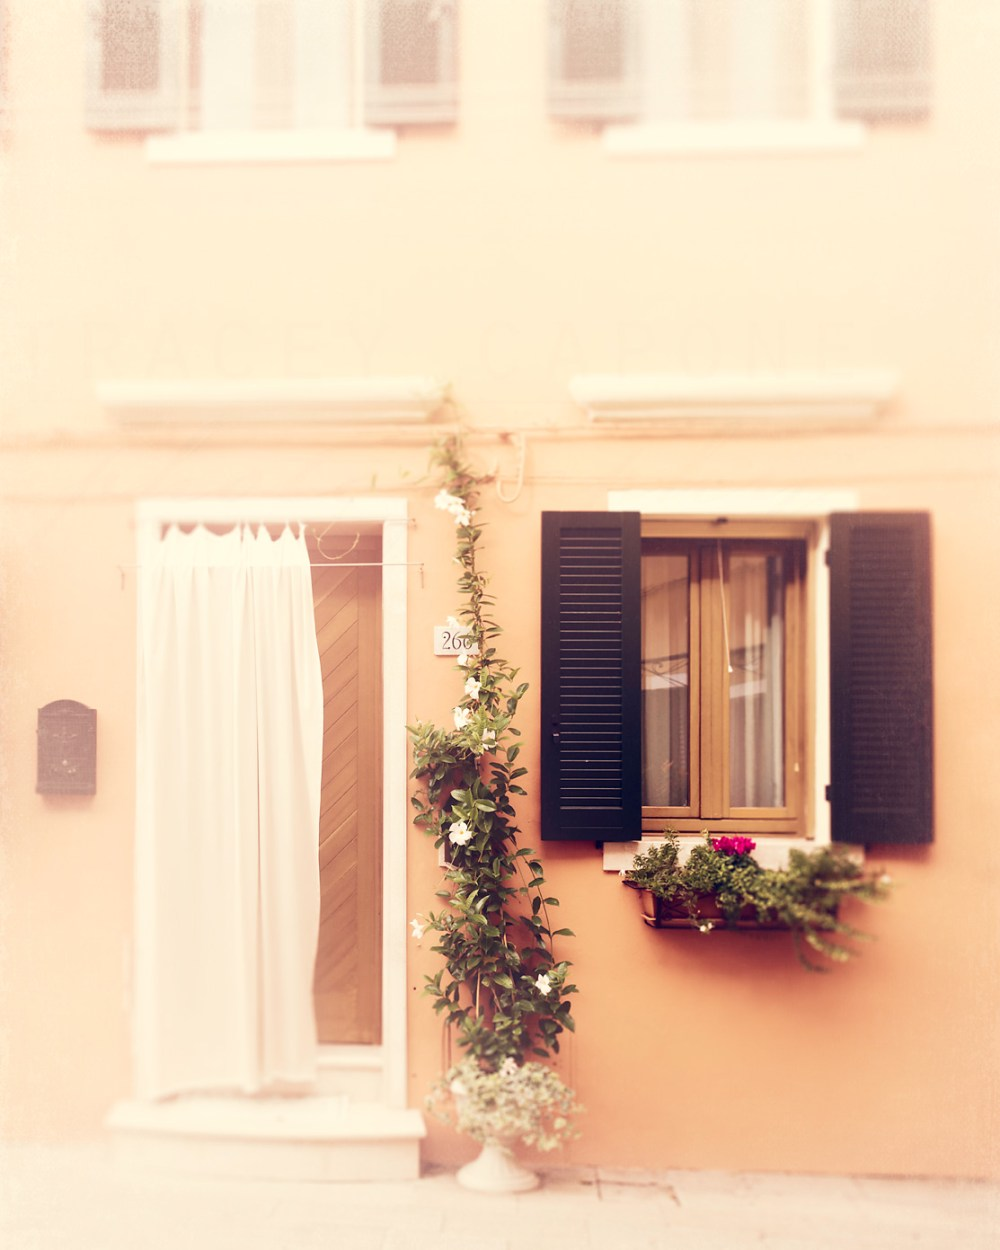 Peach colored home with climbing flowers and a white curtain on the island of Burano, Italy. Travel photography by Tracey Capone.